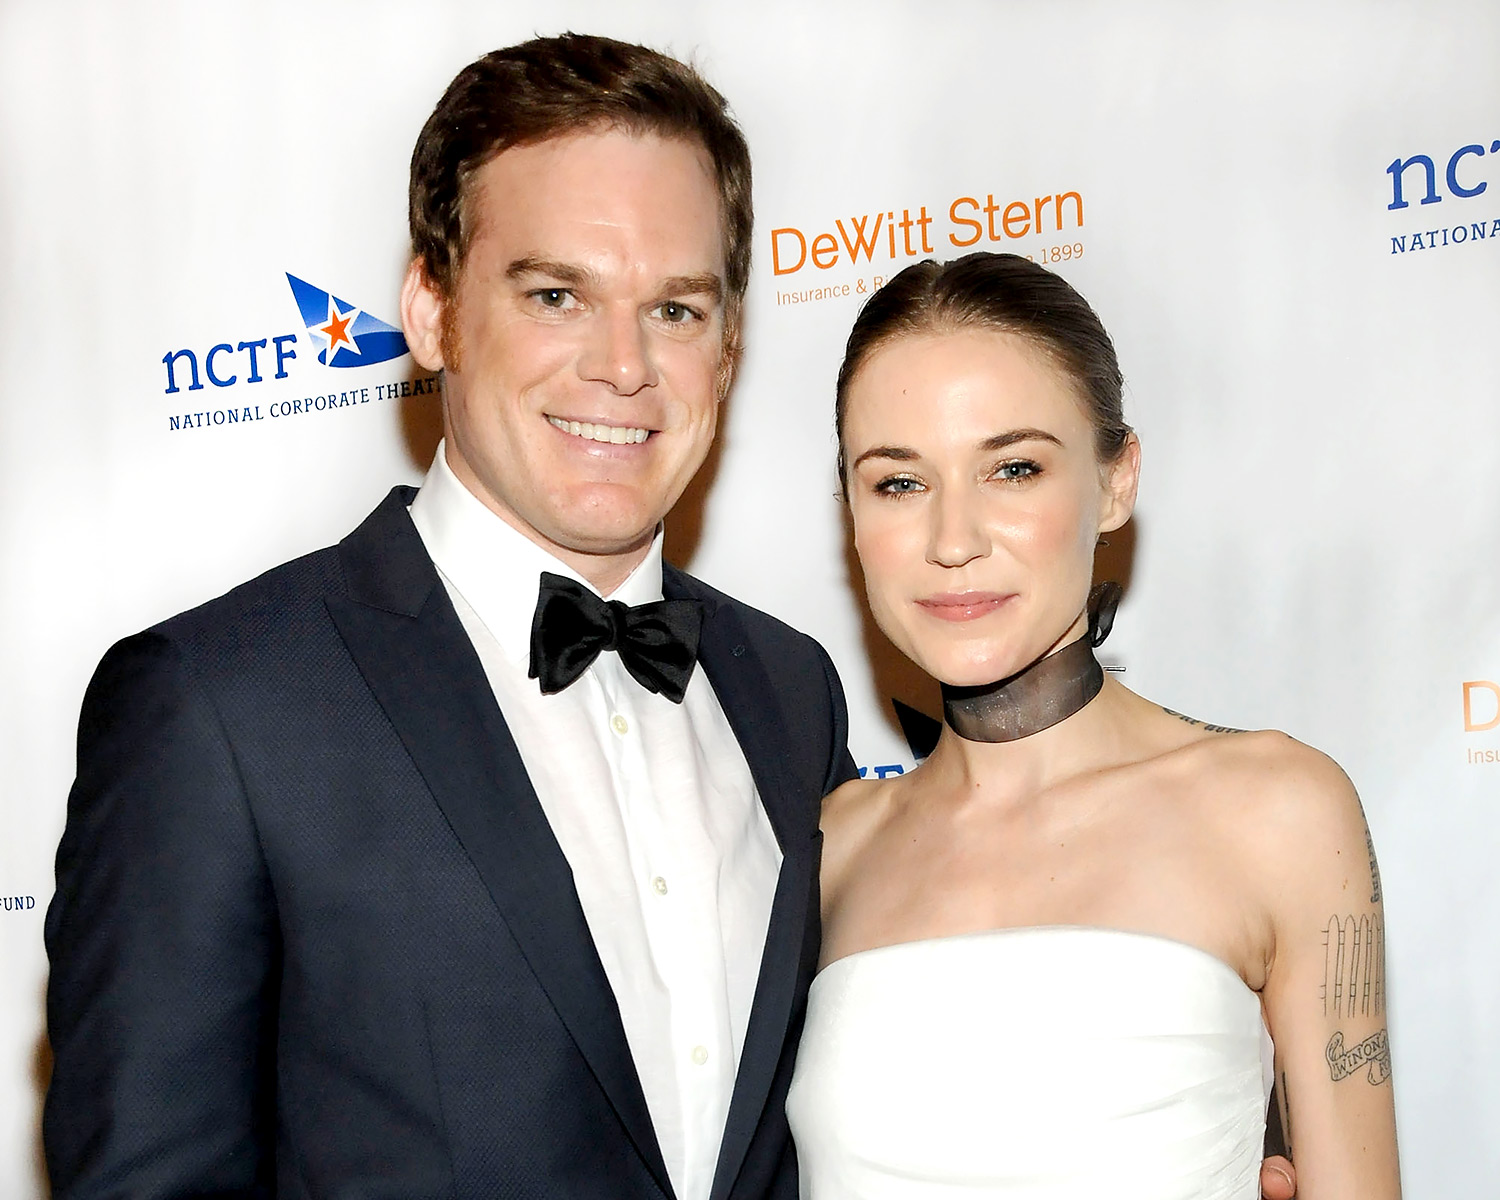 Dexter's Michael C. Hall, Morgan Macgregor Married at City Hall